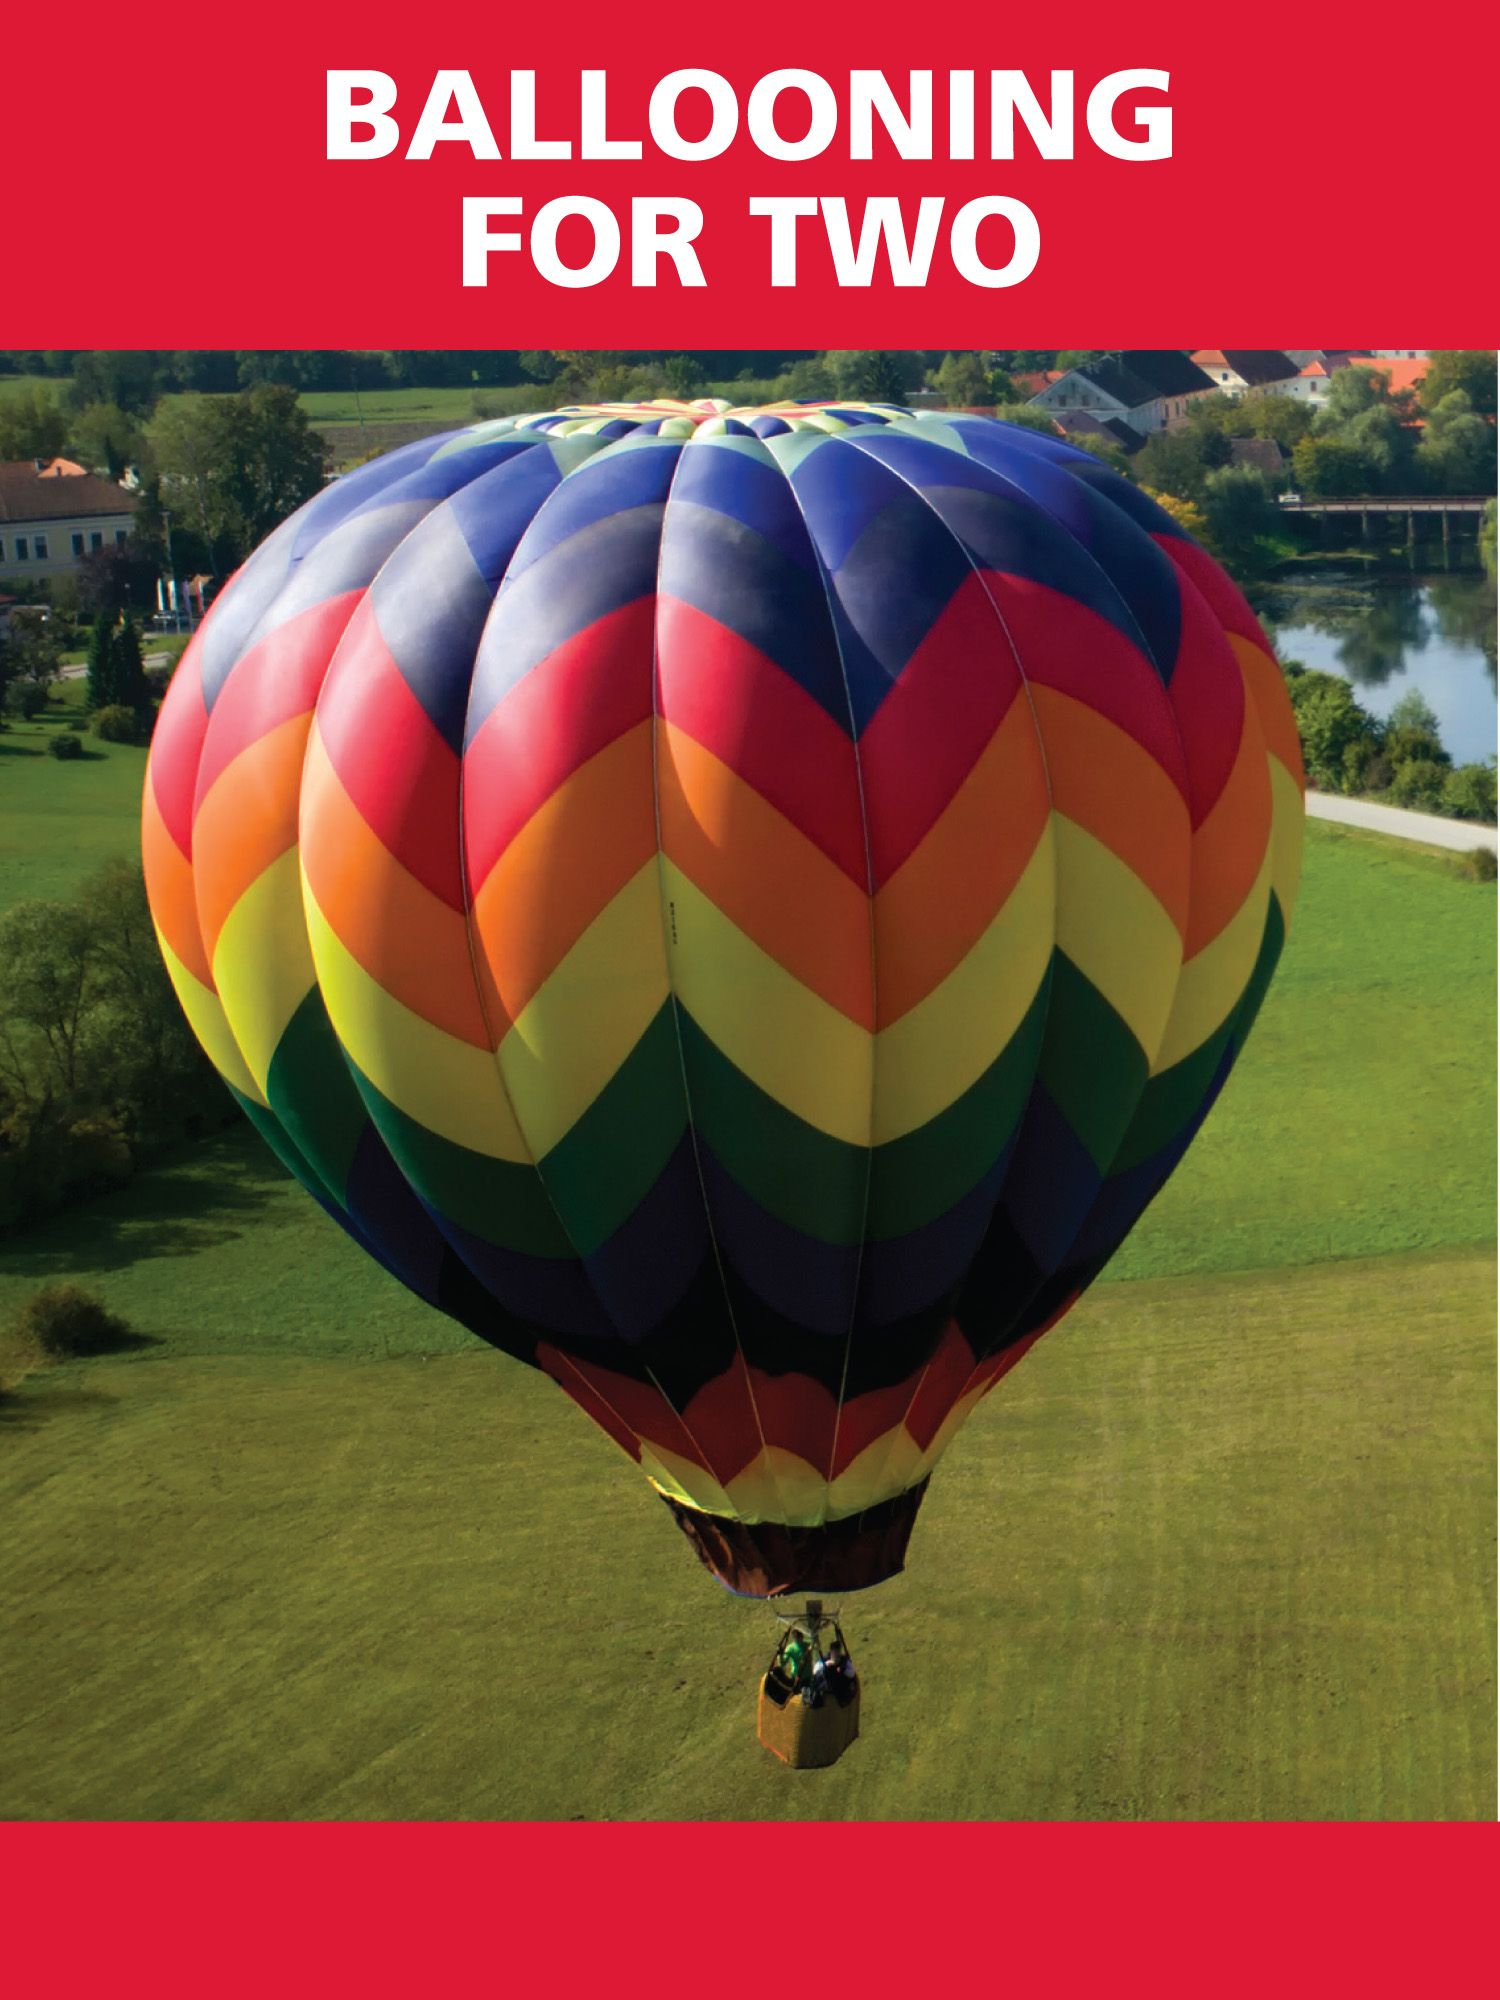 Ballooning for Two